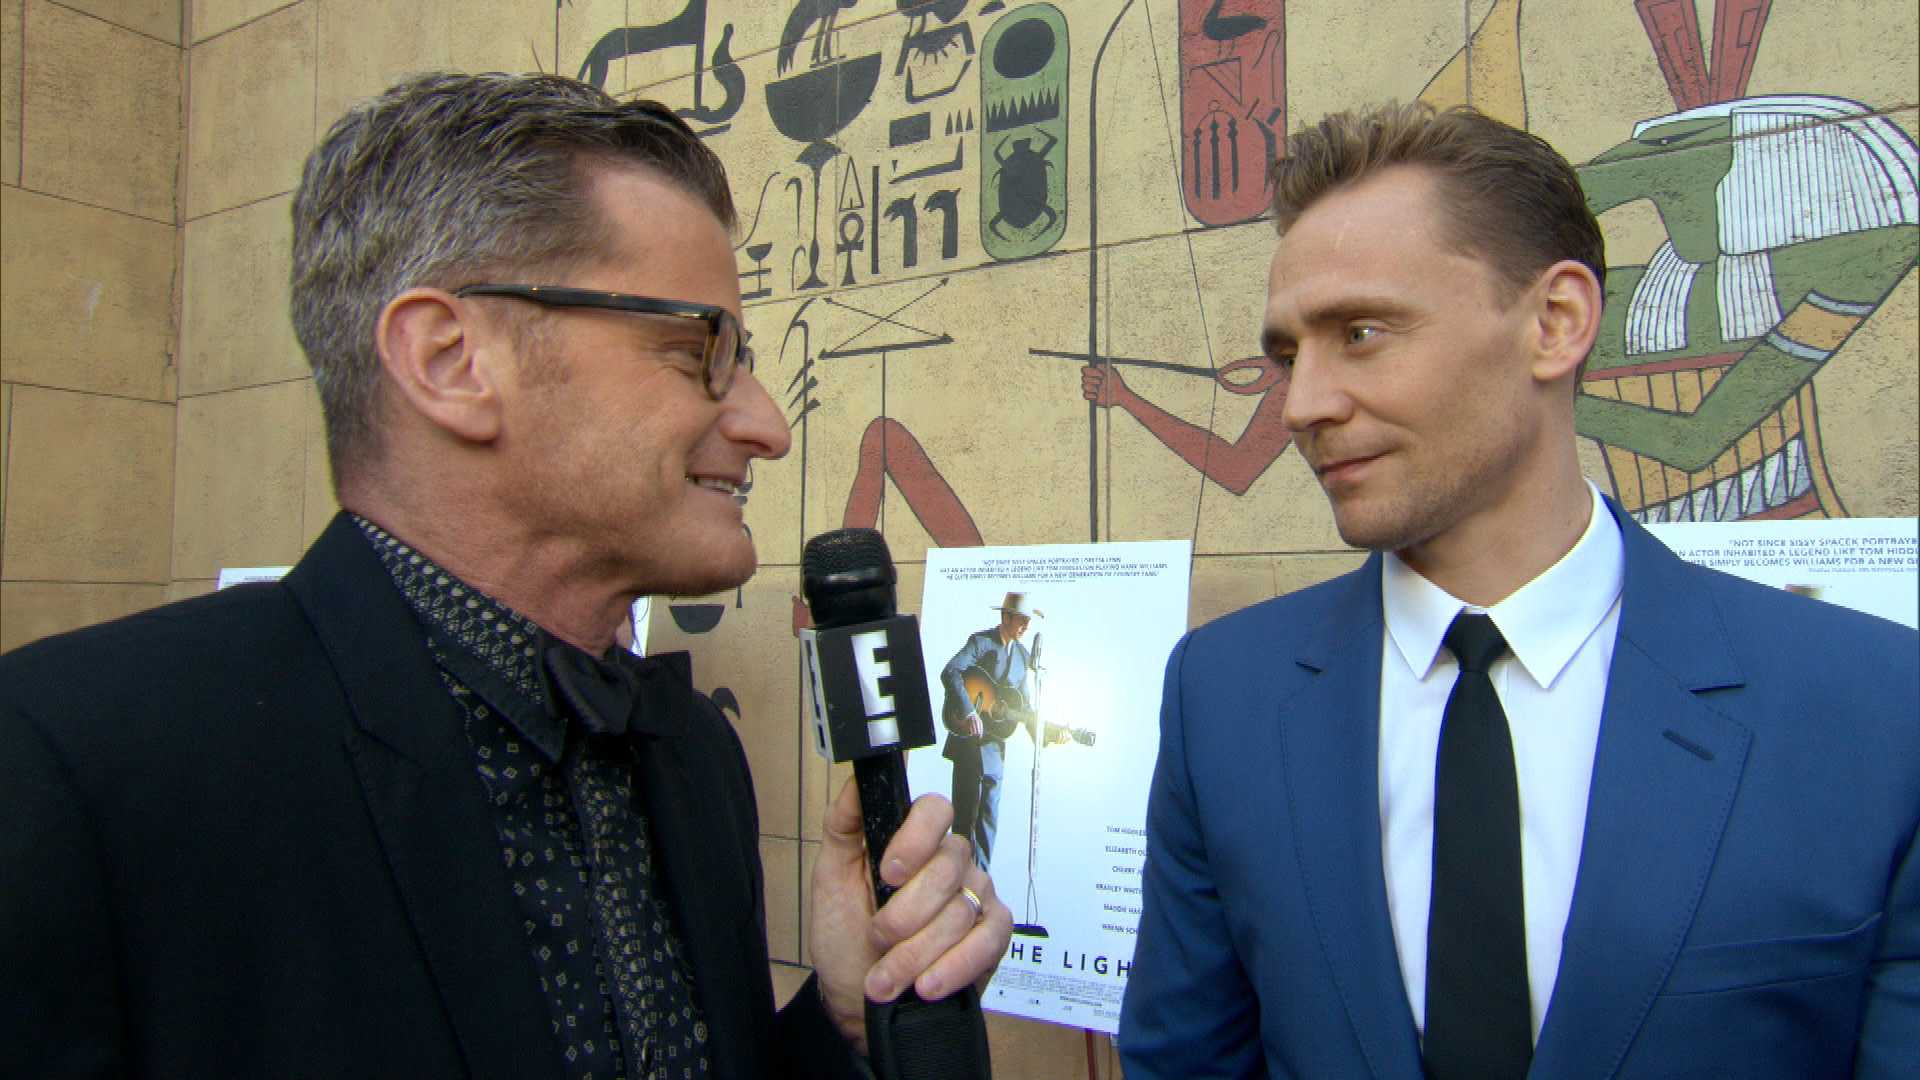 Will Tom Hiddleston Ever Get to Play James Bond?